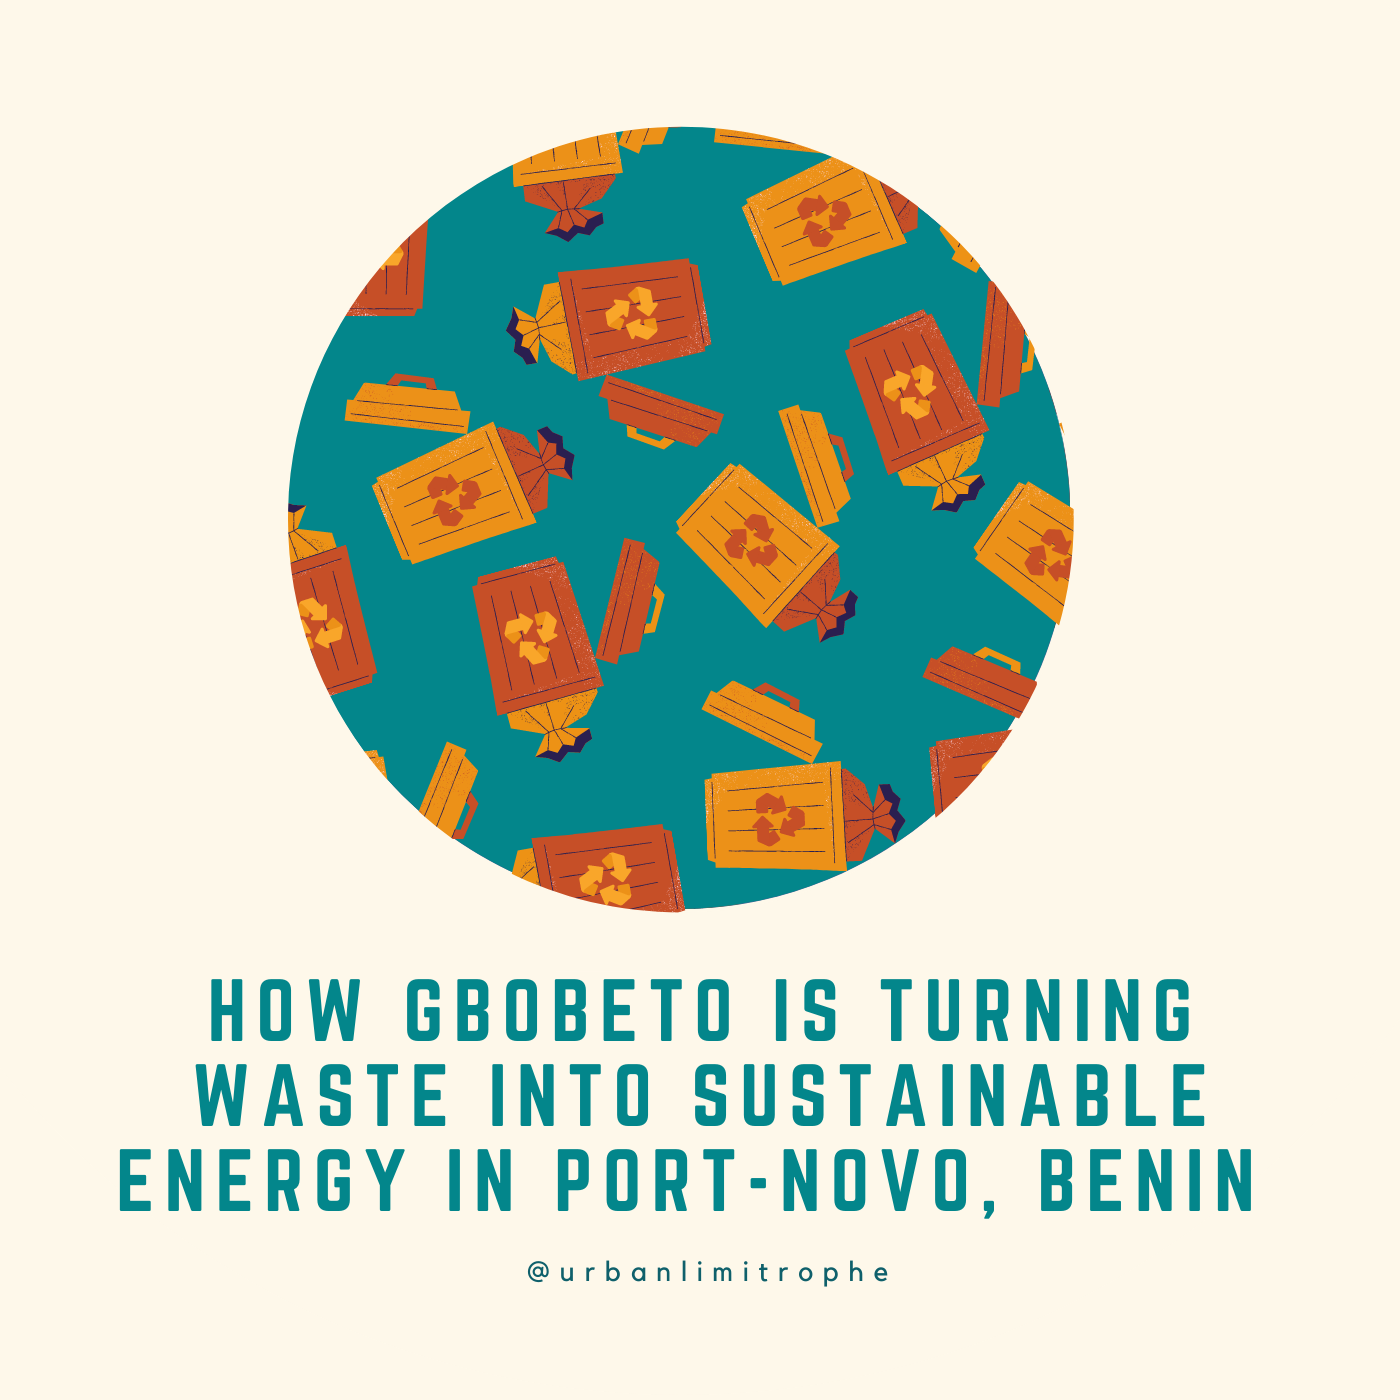 Episode 5: How Gbobètô is Turning Waste Into Sustainable Energy in Port-Novo, Benin #africancities #podcast #SustainableEnergy #WasteReclaimers